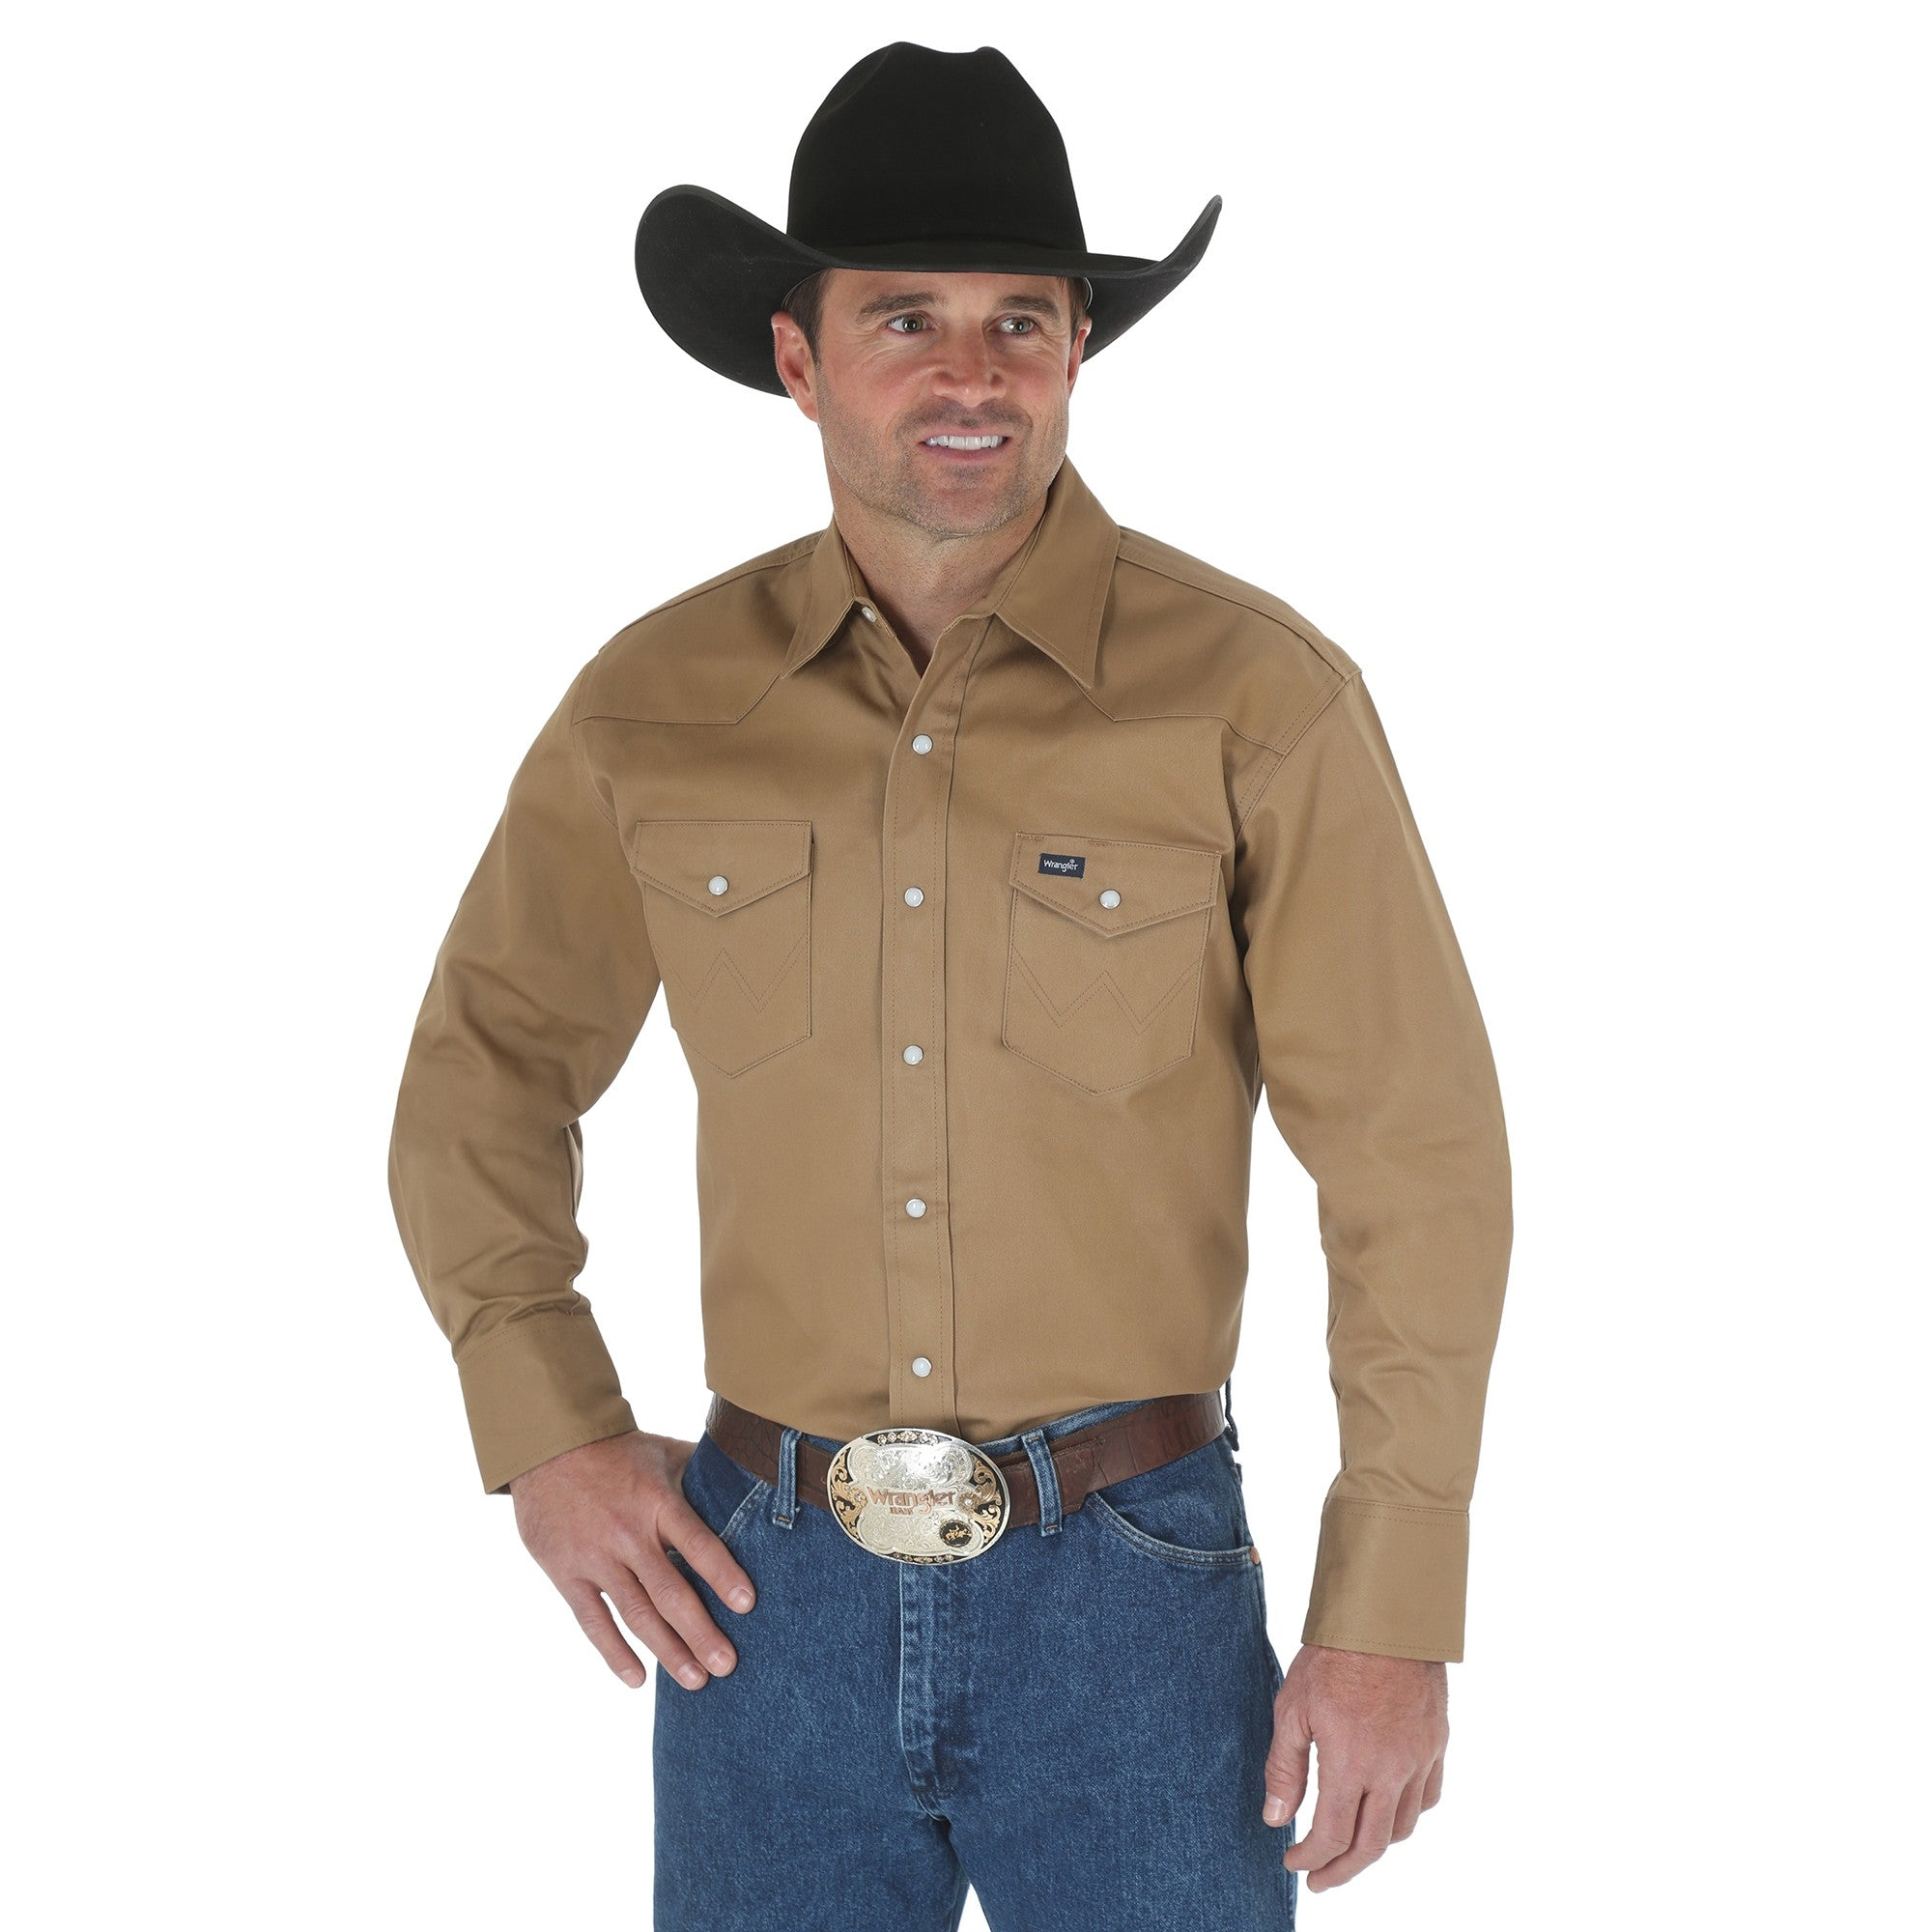 Men's Wrangler Authentic Cowboy Cut Snap Front Work Shirt #MS71519X (Big and Tall)